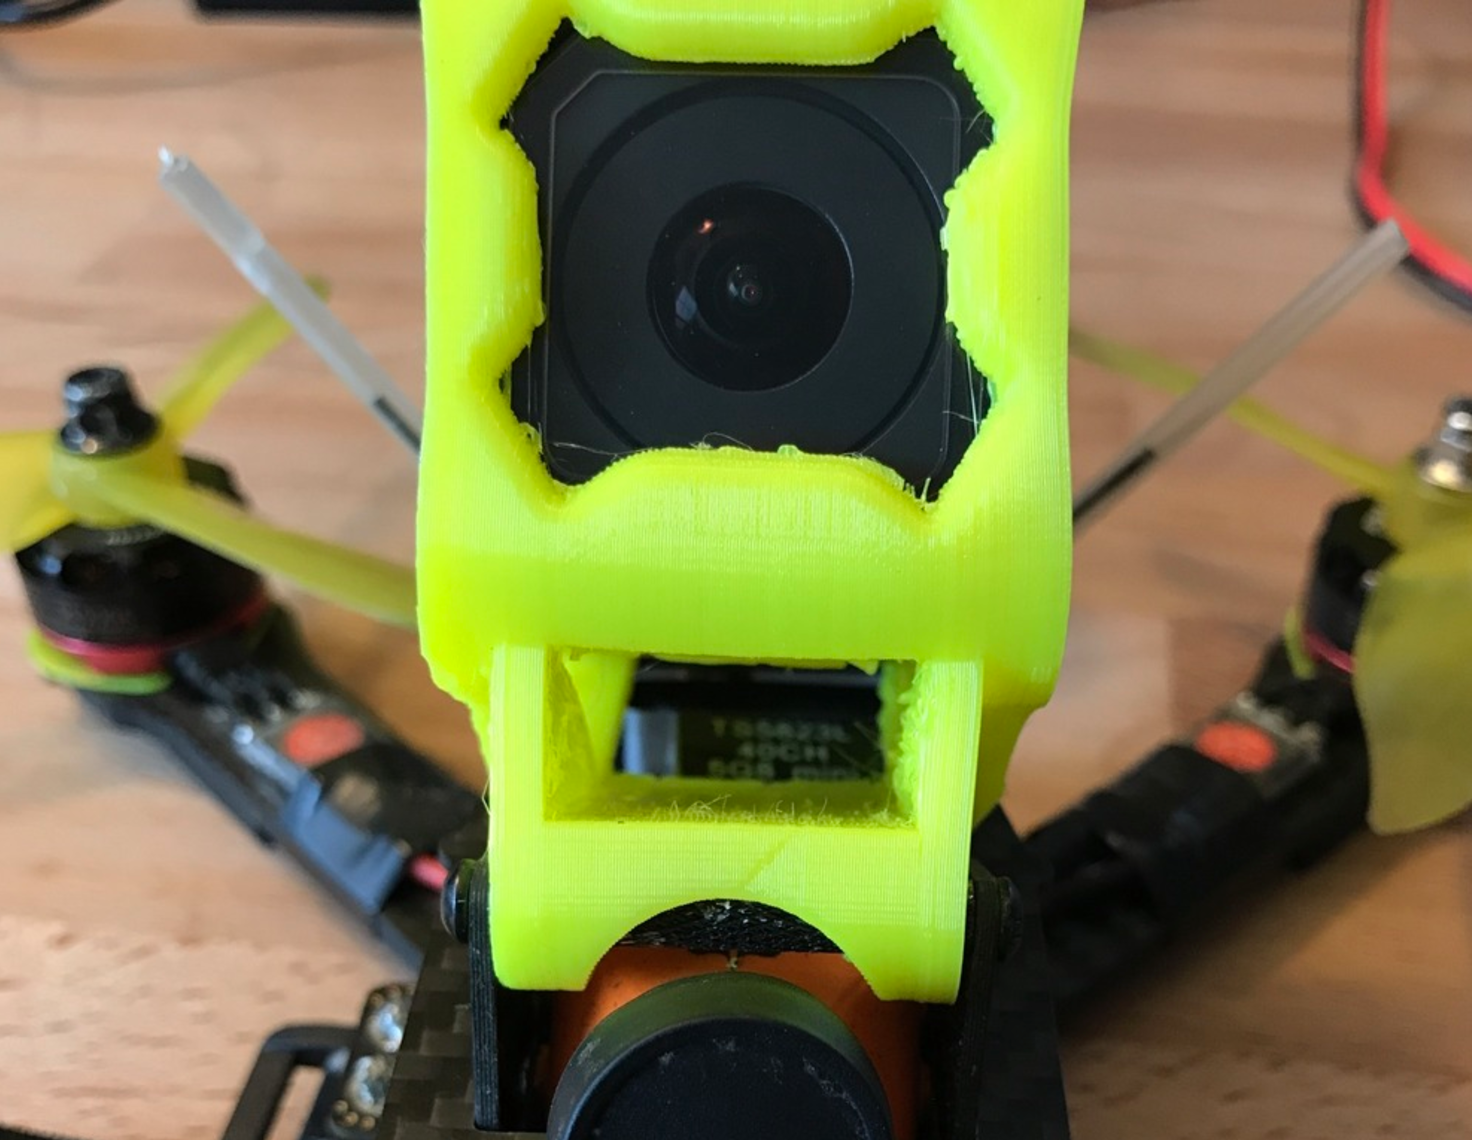 Capture d'écran 2017-06-02 à 14.18.39.png Download free STL file Realacc X210 Gopro Session mount with VTX Vent • Object to 3D print, bromego